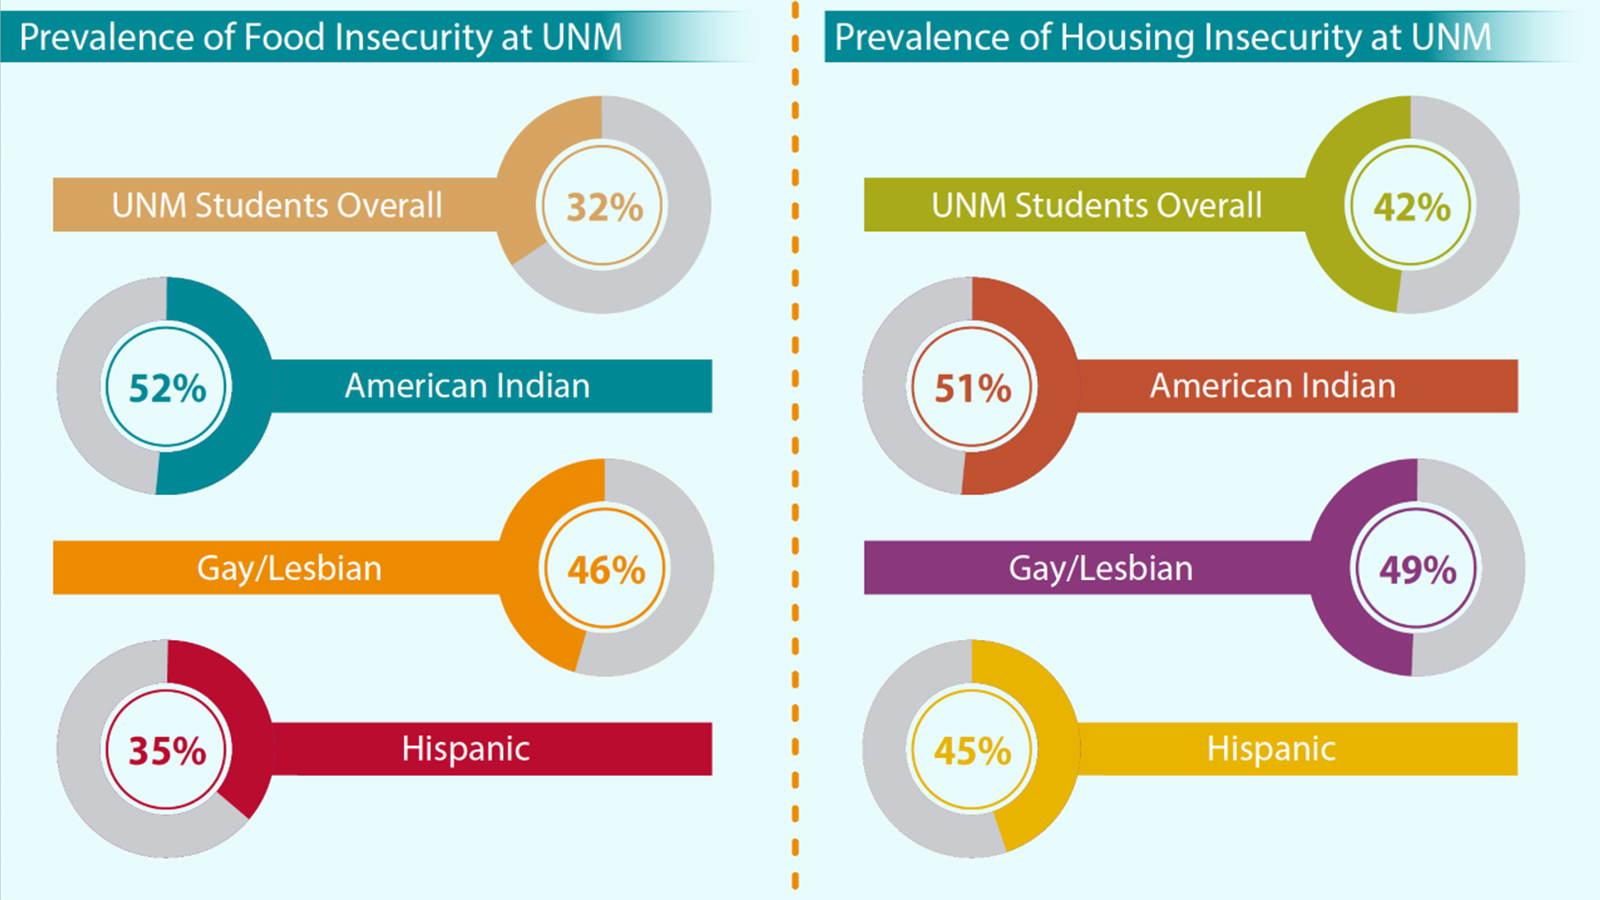 New research by UNM faculty shows some students are food or housing insecure